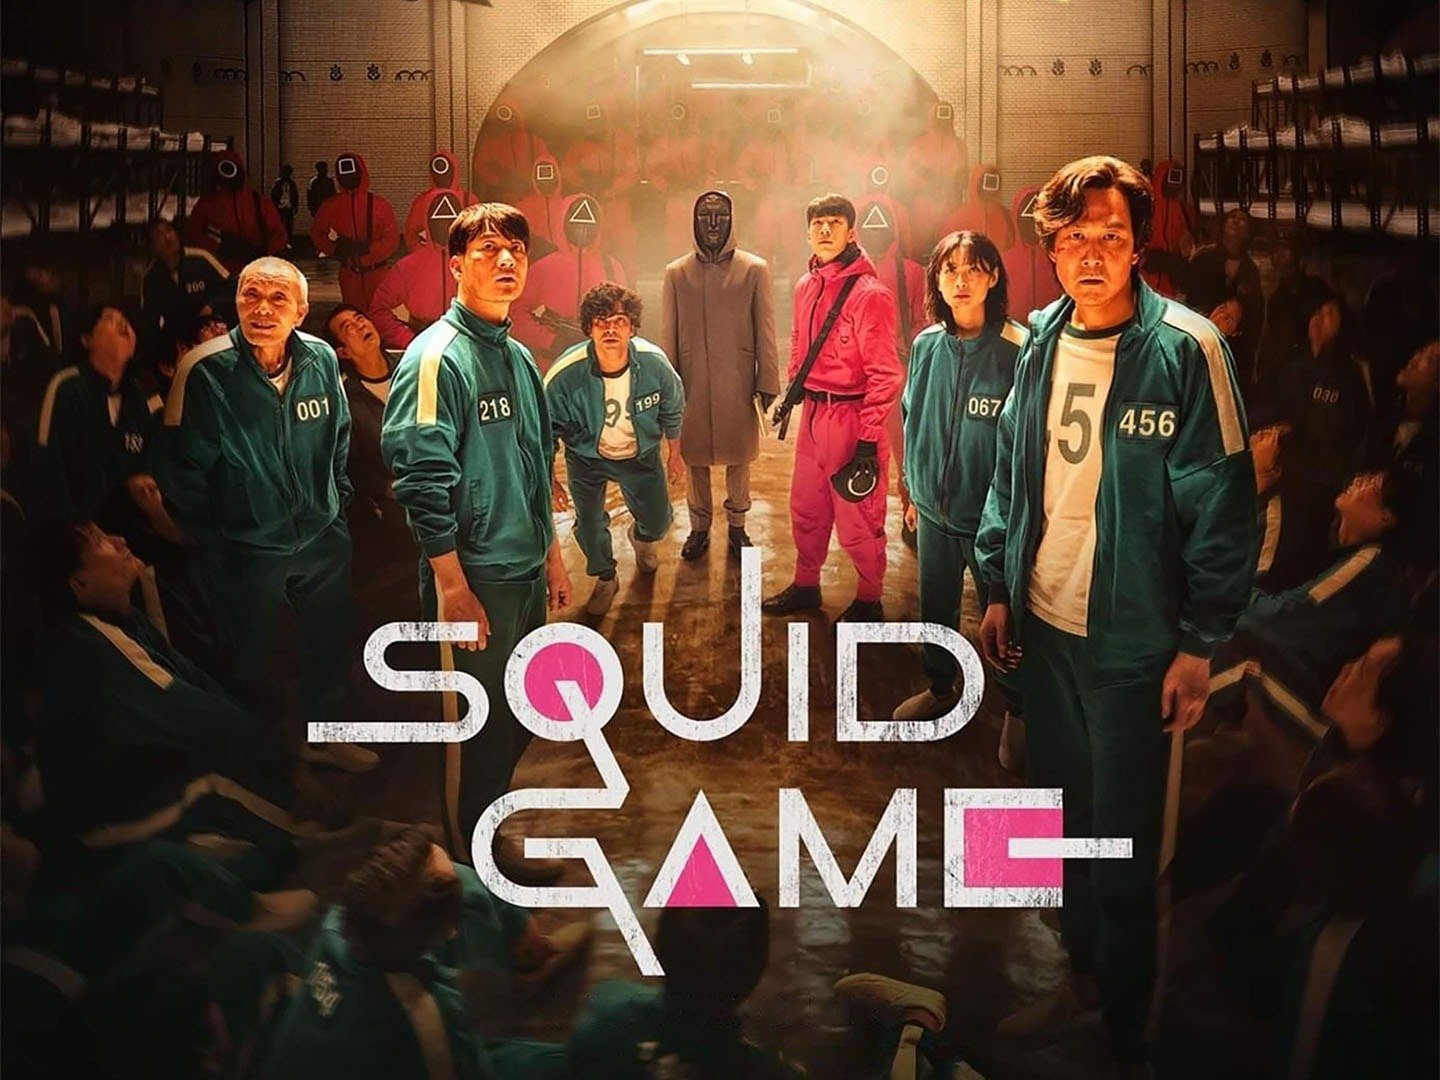 'Squid Game Review' — The #1 Show On Netflix